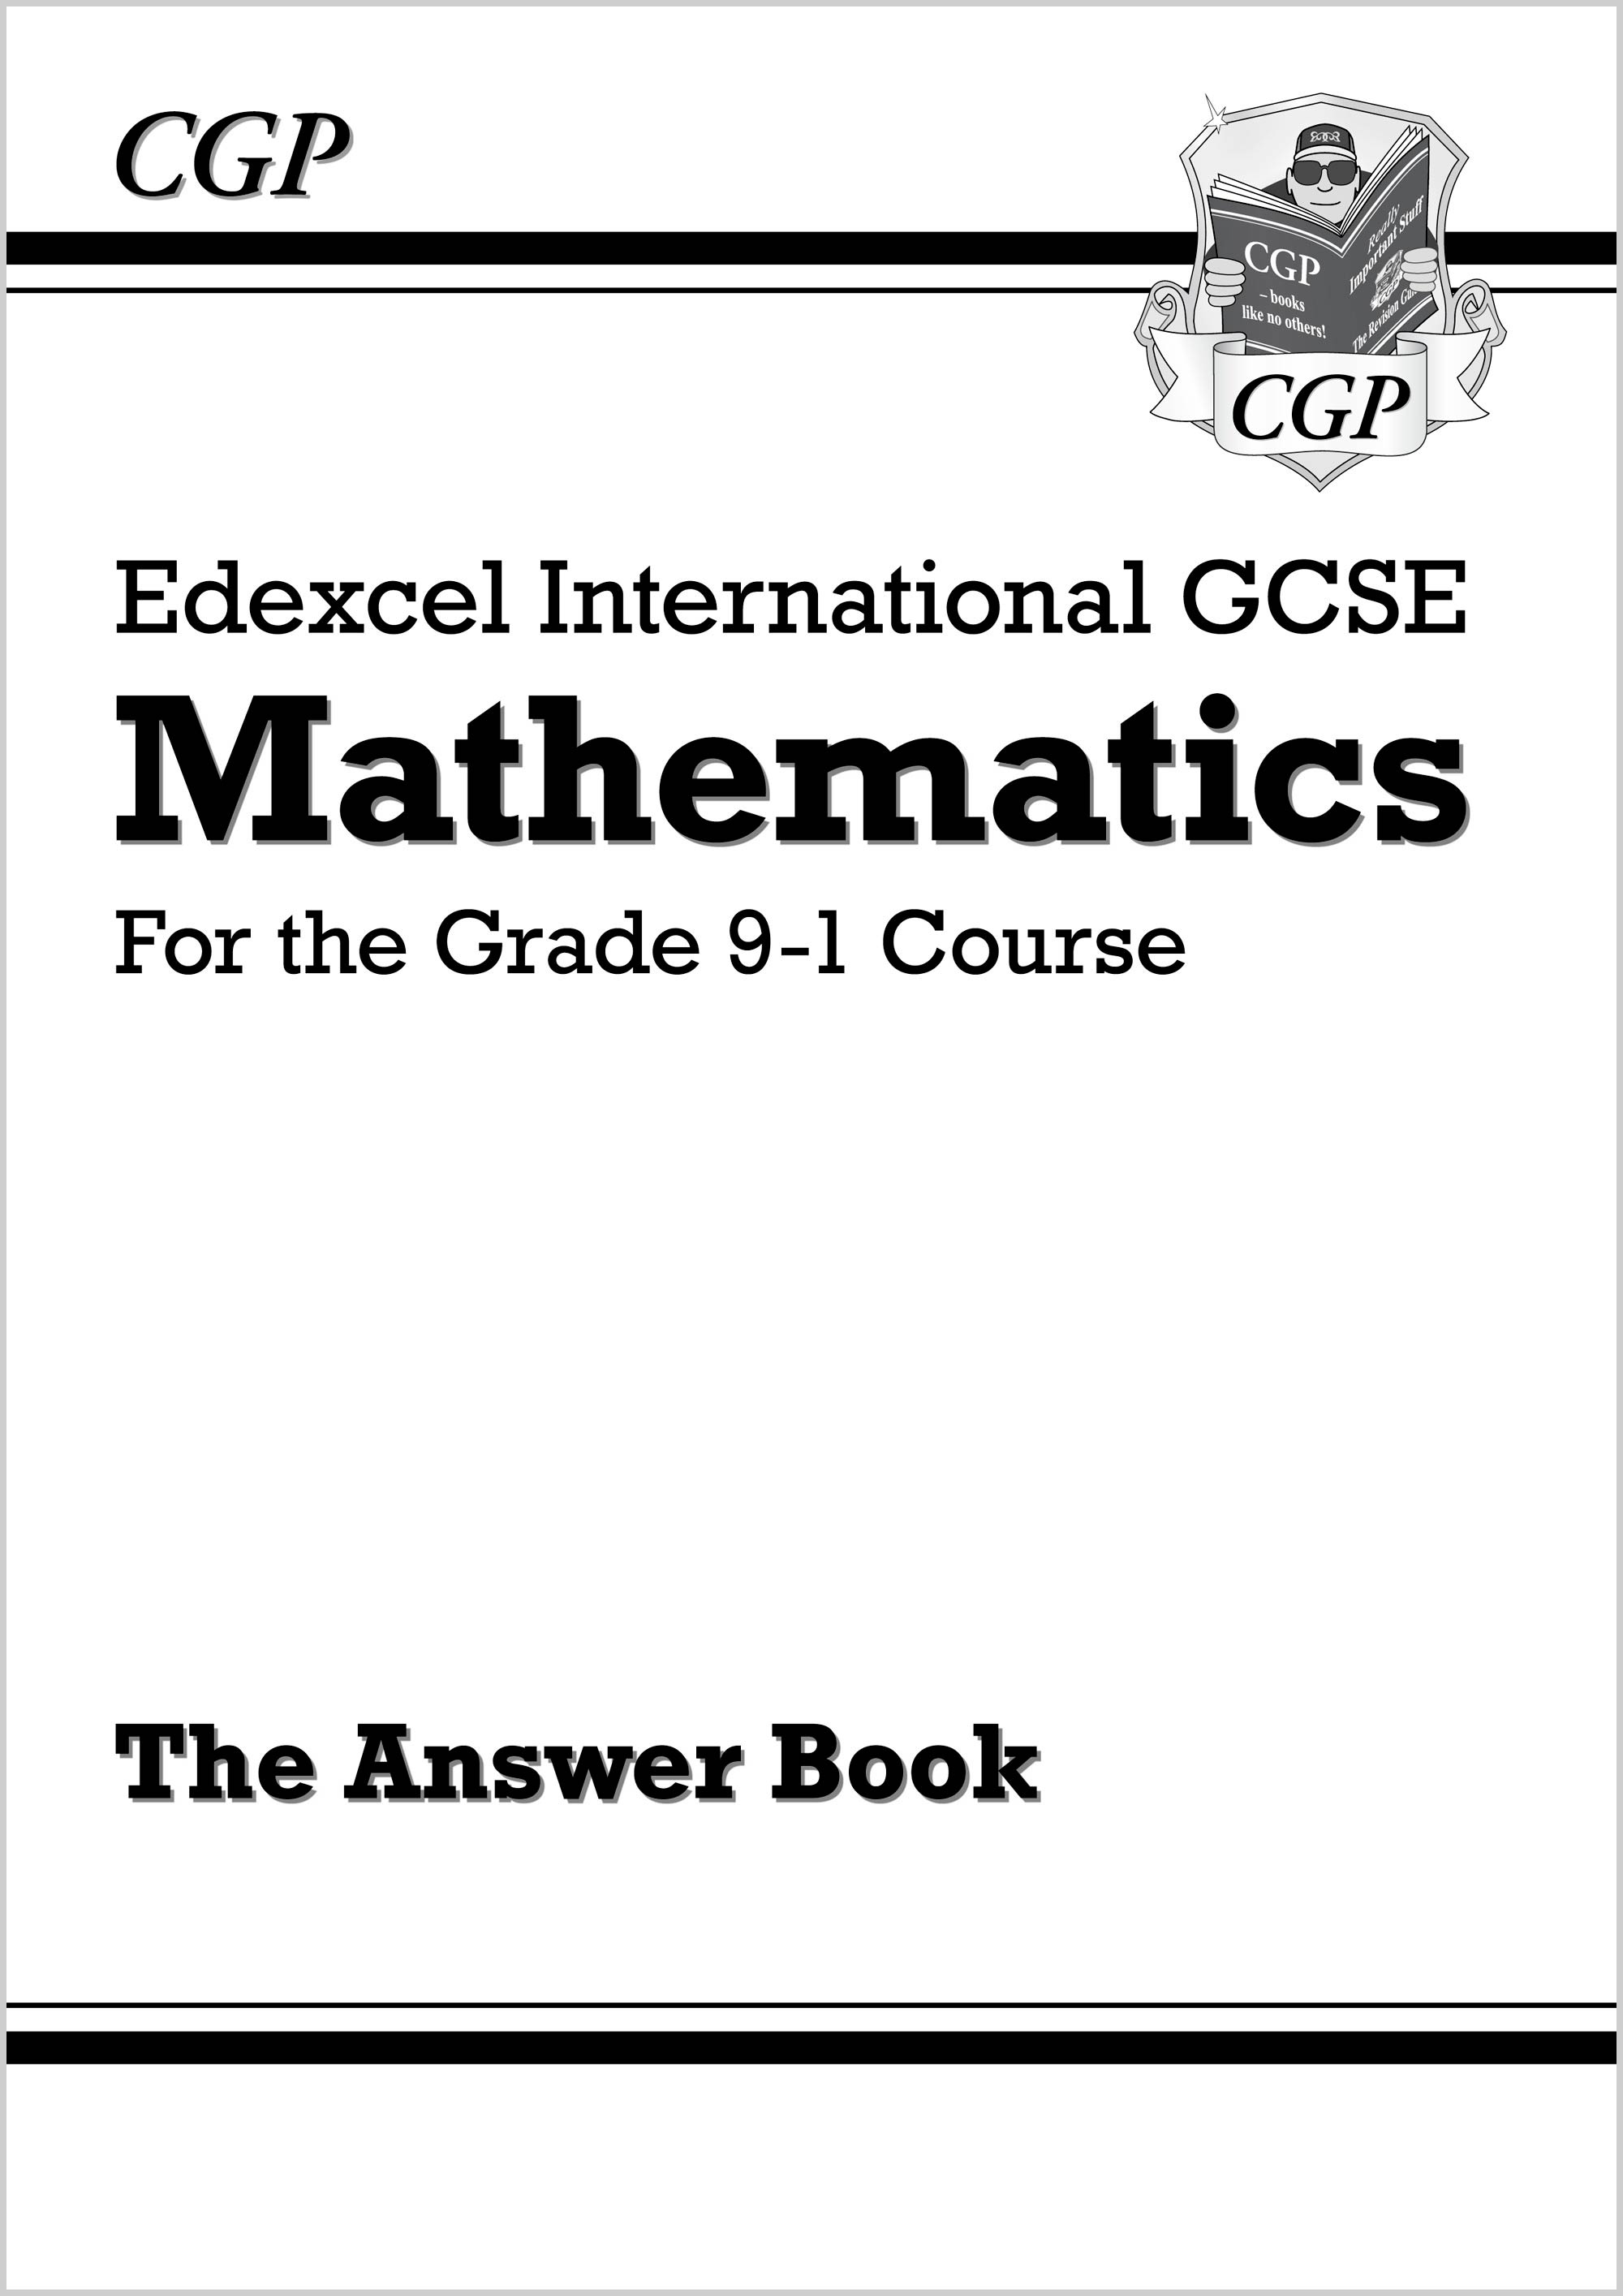 MEAI43 - Edexcel International GCSE Maths Answers for Workbook - for the Grade 9-1 Course